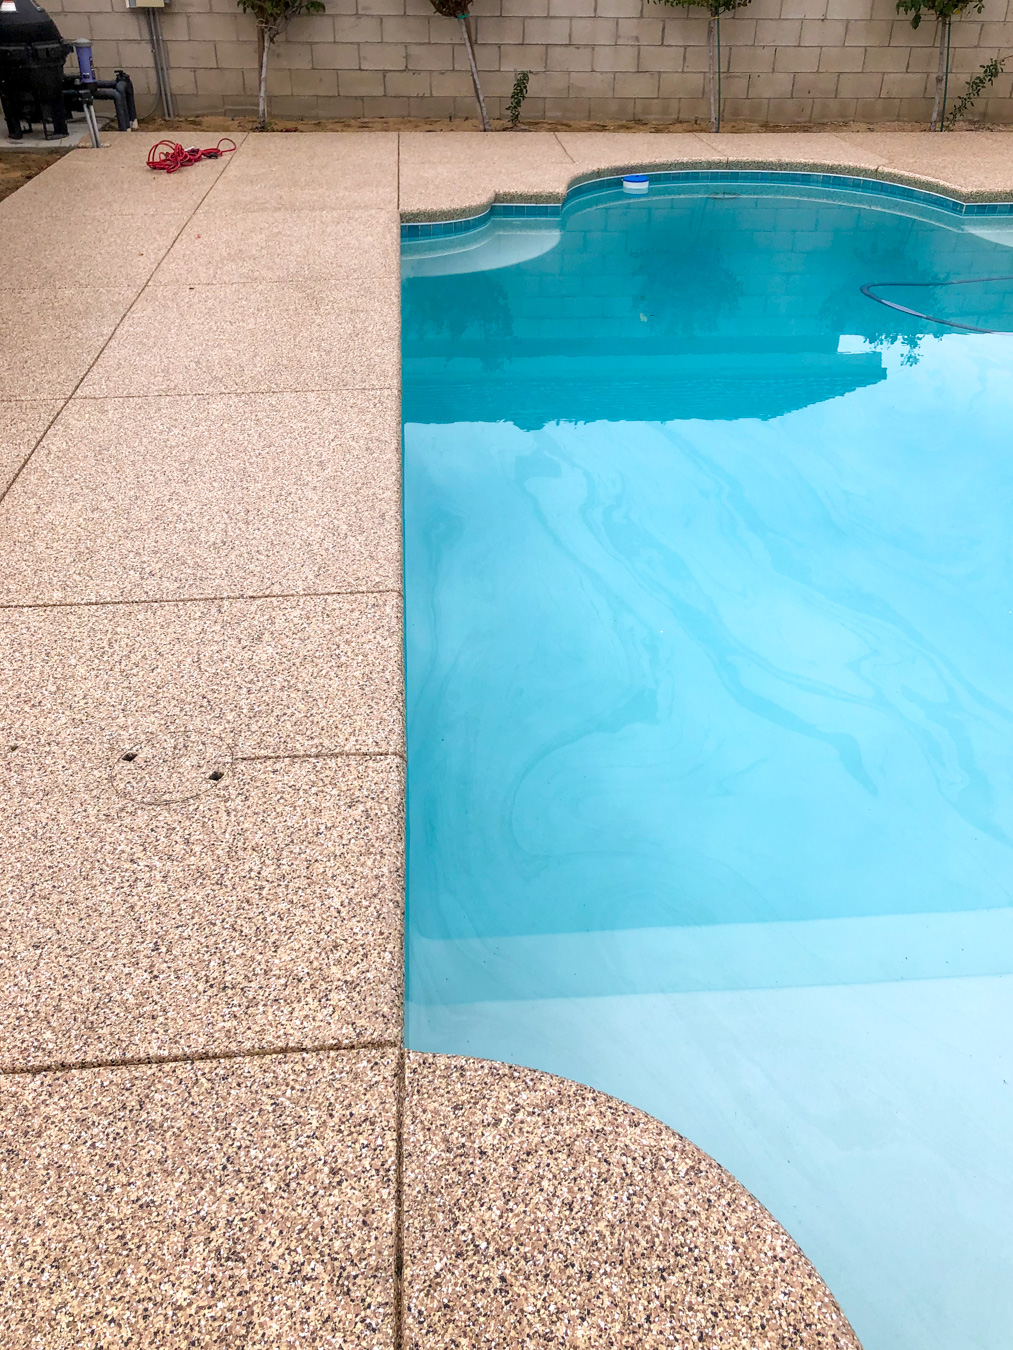 Concrete Coating on a Pool Deck